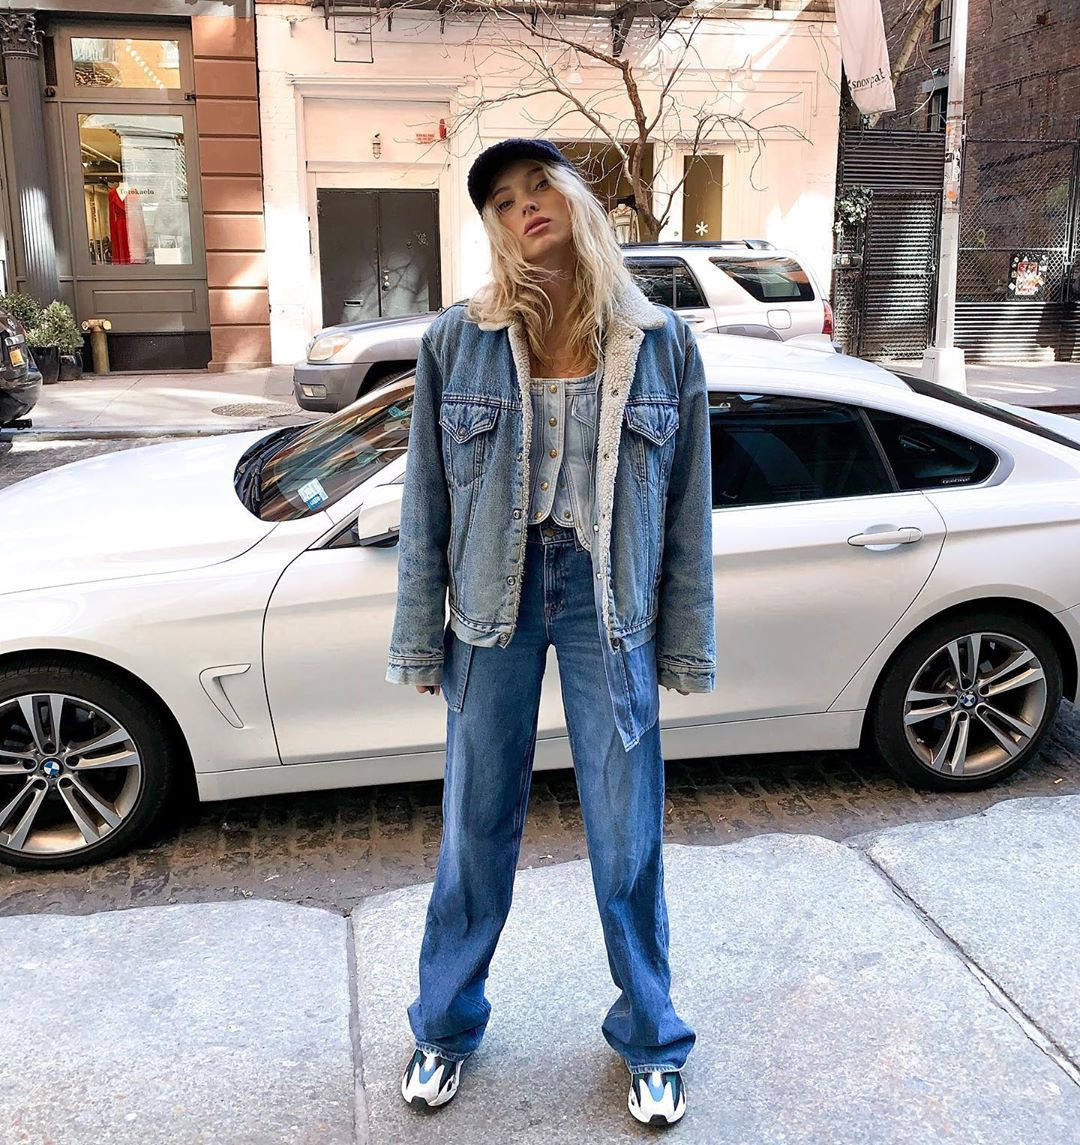 Elsa Hosk jeans dress for women, costumes designs, personal luxury car